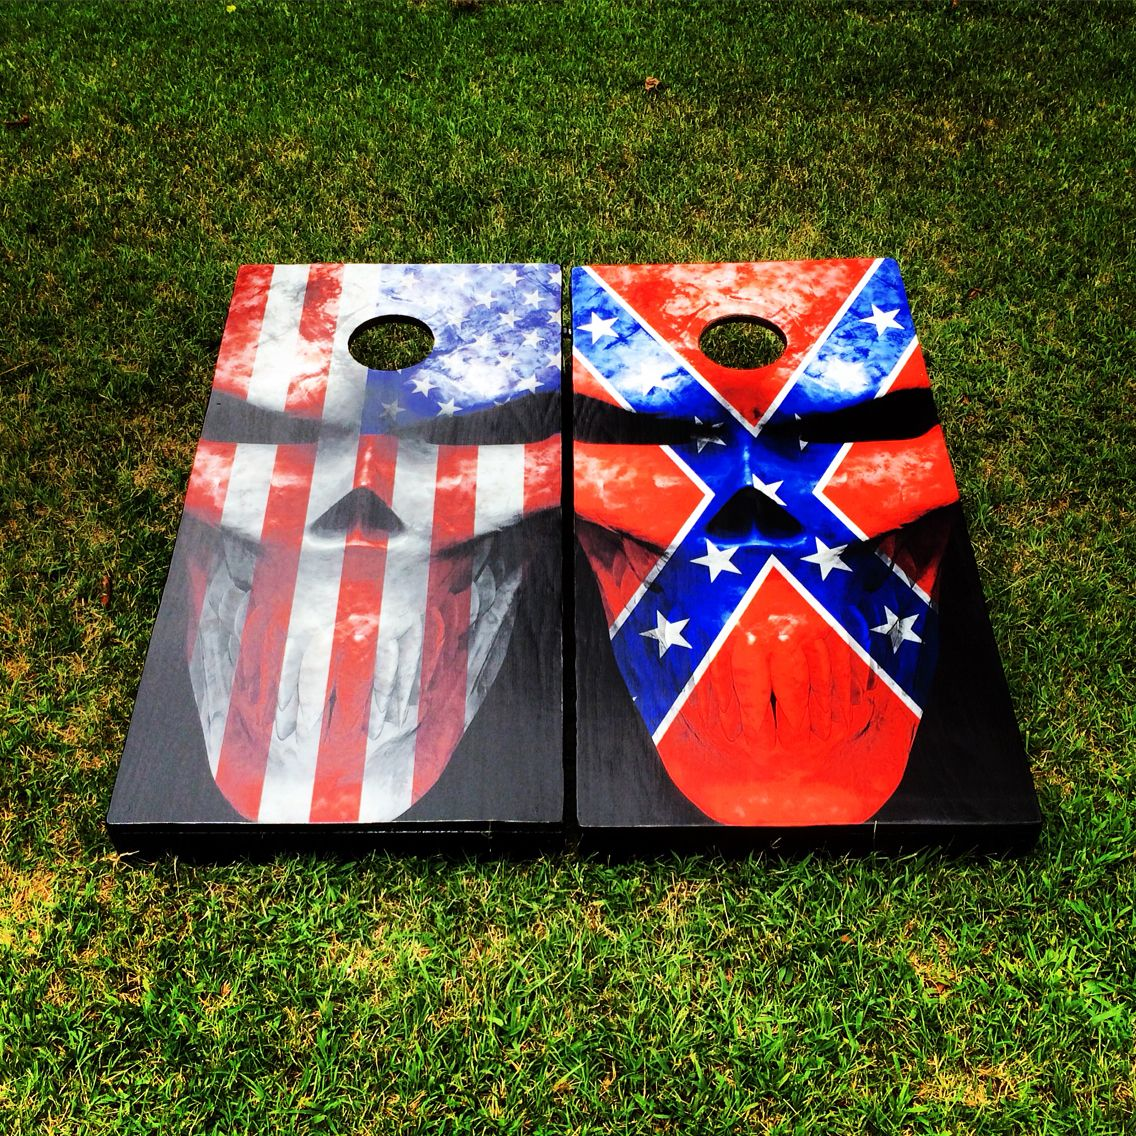 Discussion on this topic: How to Kick Ass at Cornhole This , how-to-kick-ass-at-cornhole-this/